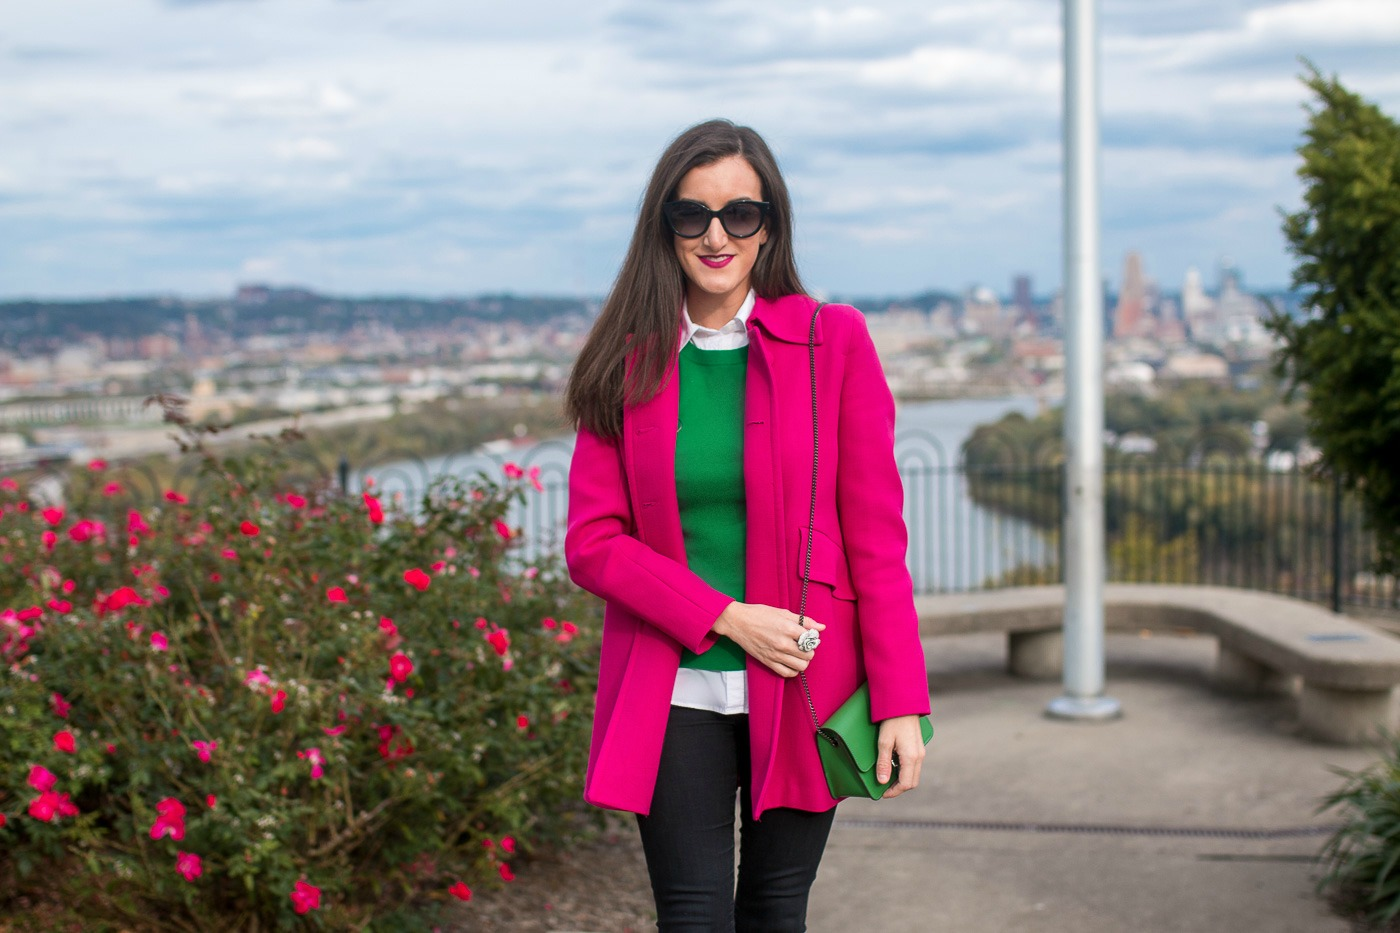 Green and Pink Outfits